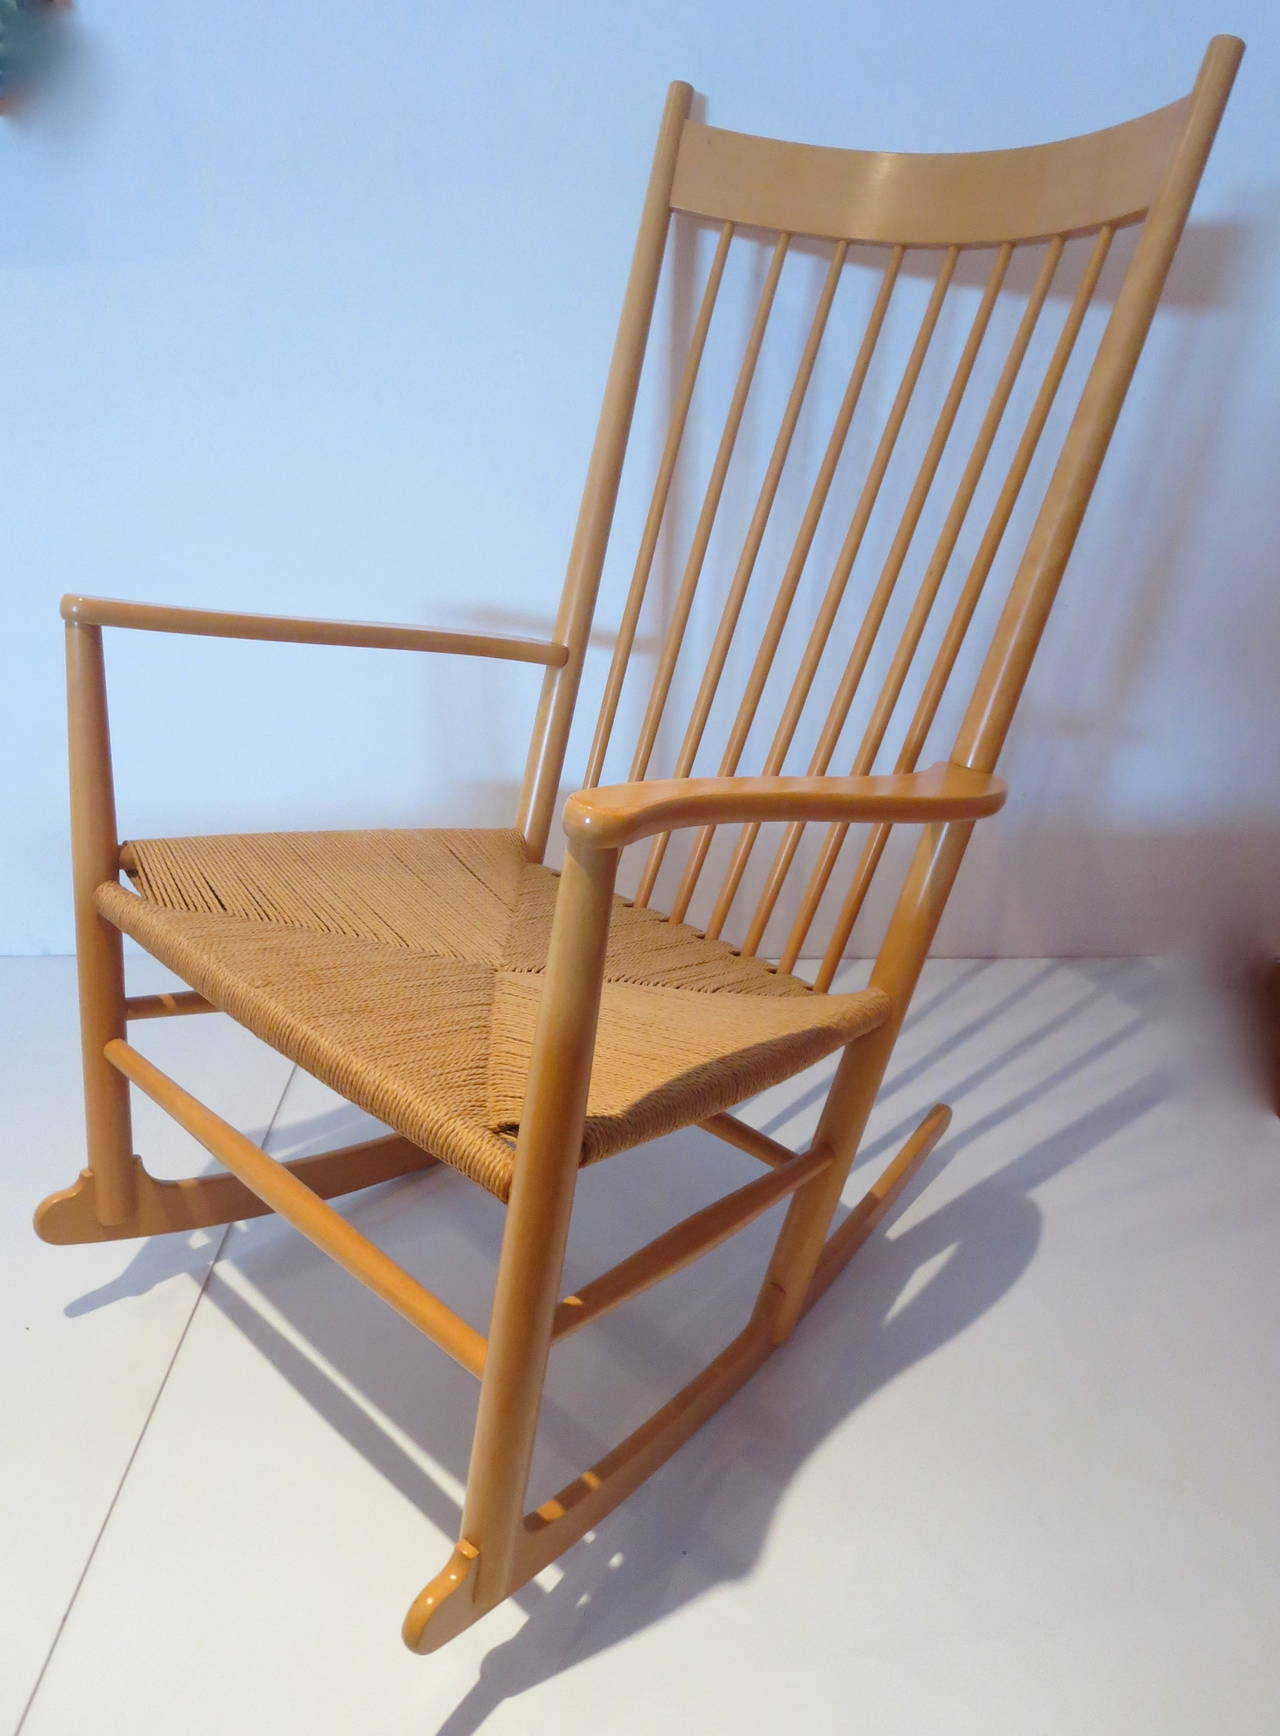 Charming Elegant Rocking Chair Design By Hans Wegner, Model J16 With Rope Seat And  Leather Pads